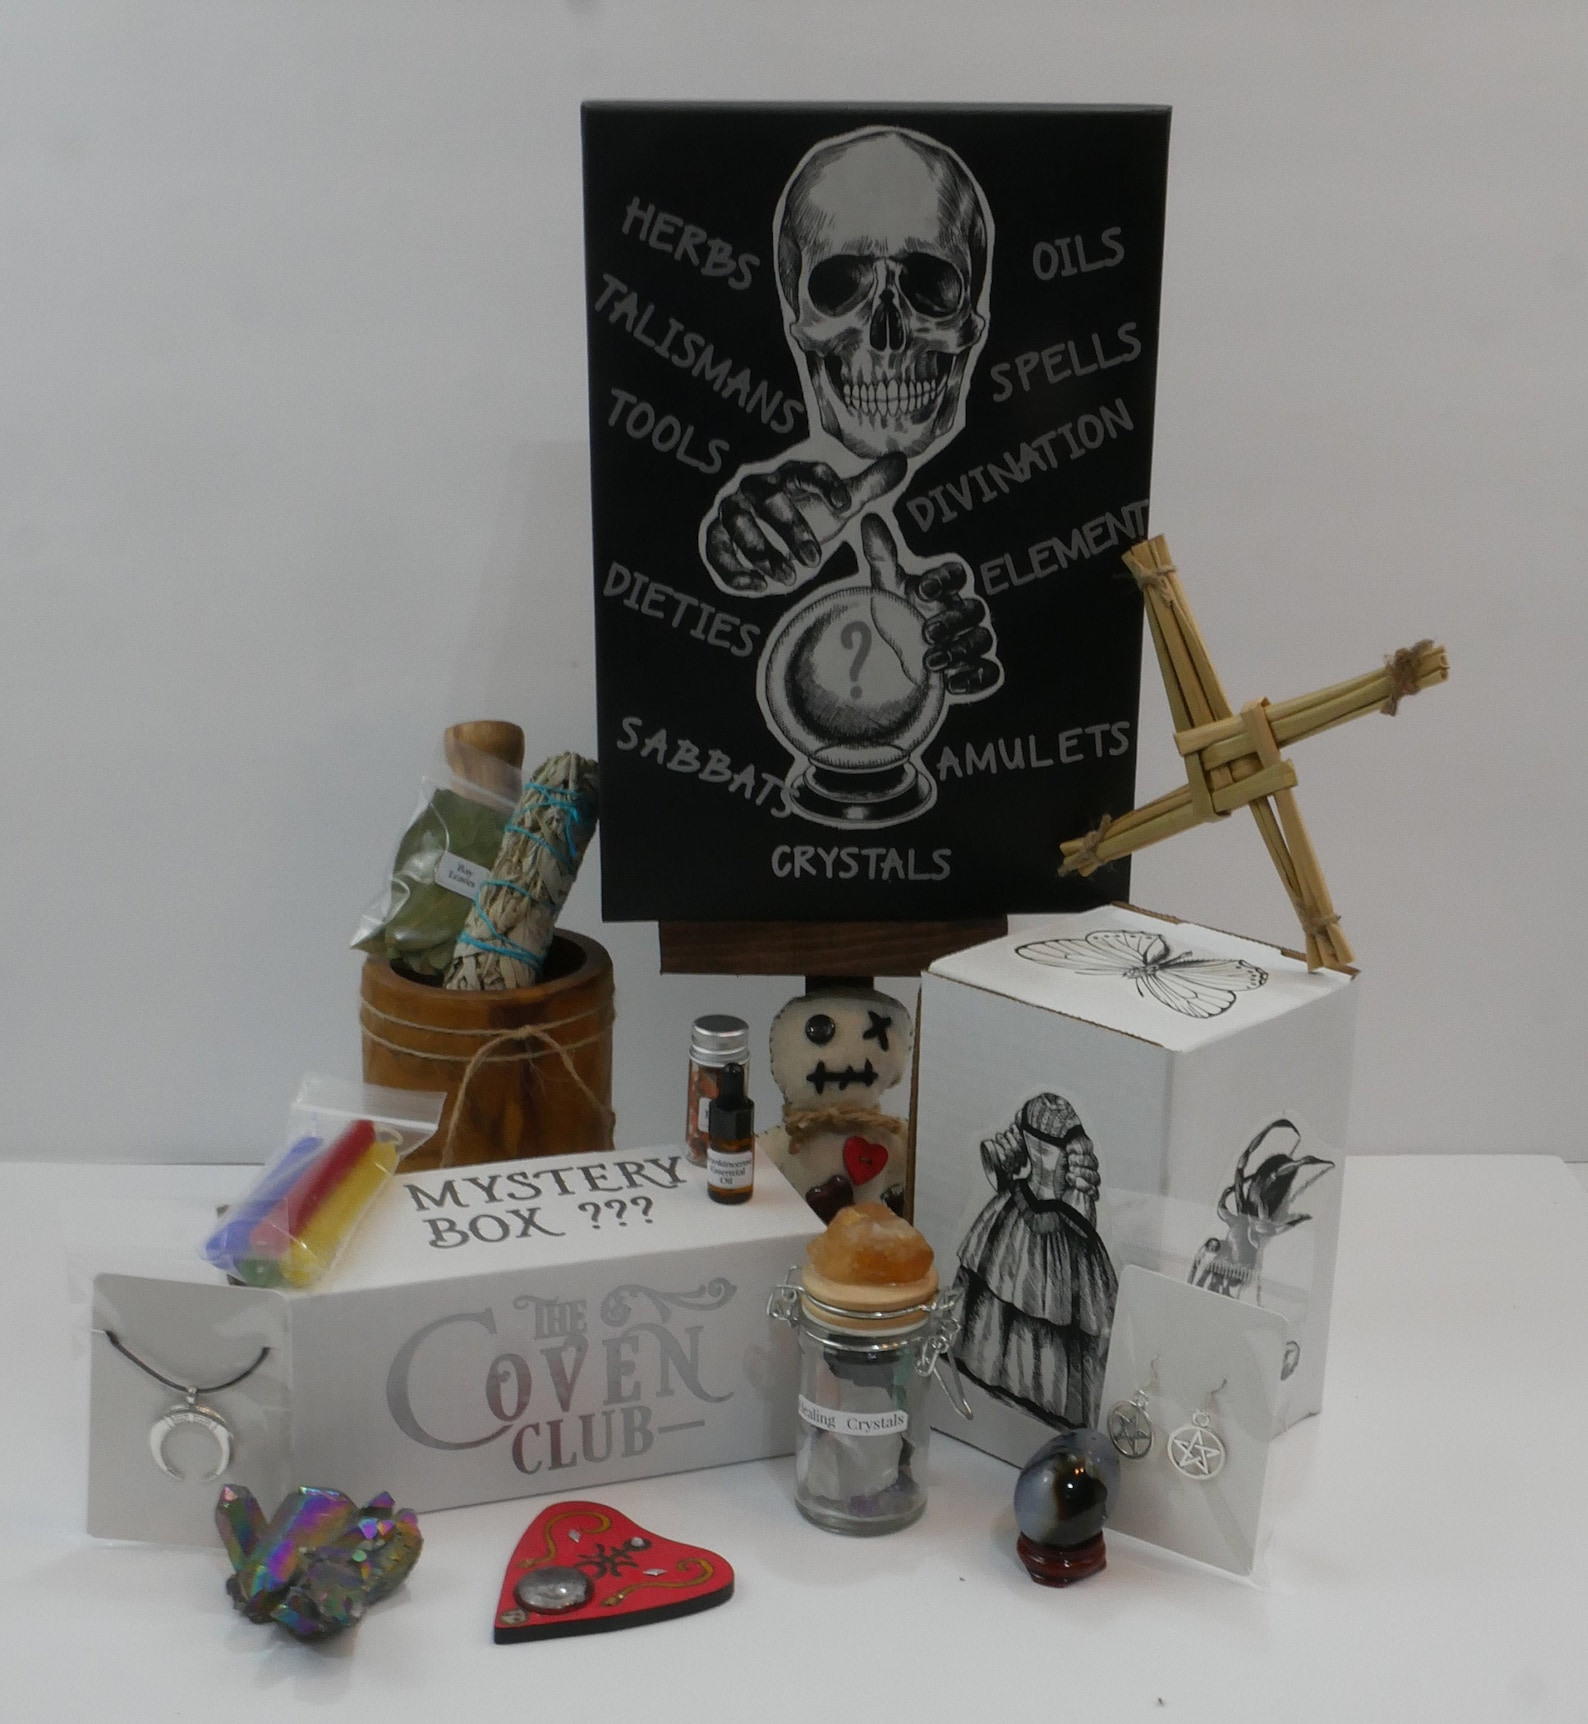 The Coven Club Witch Box